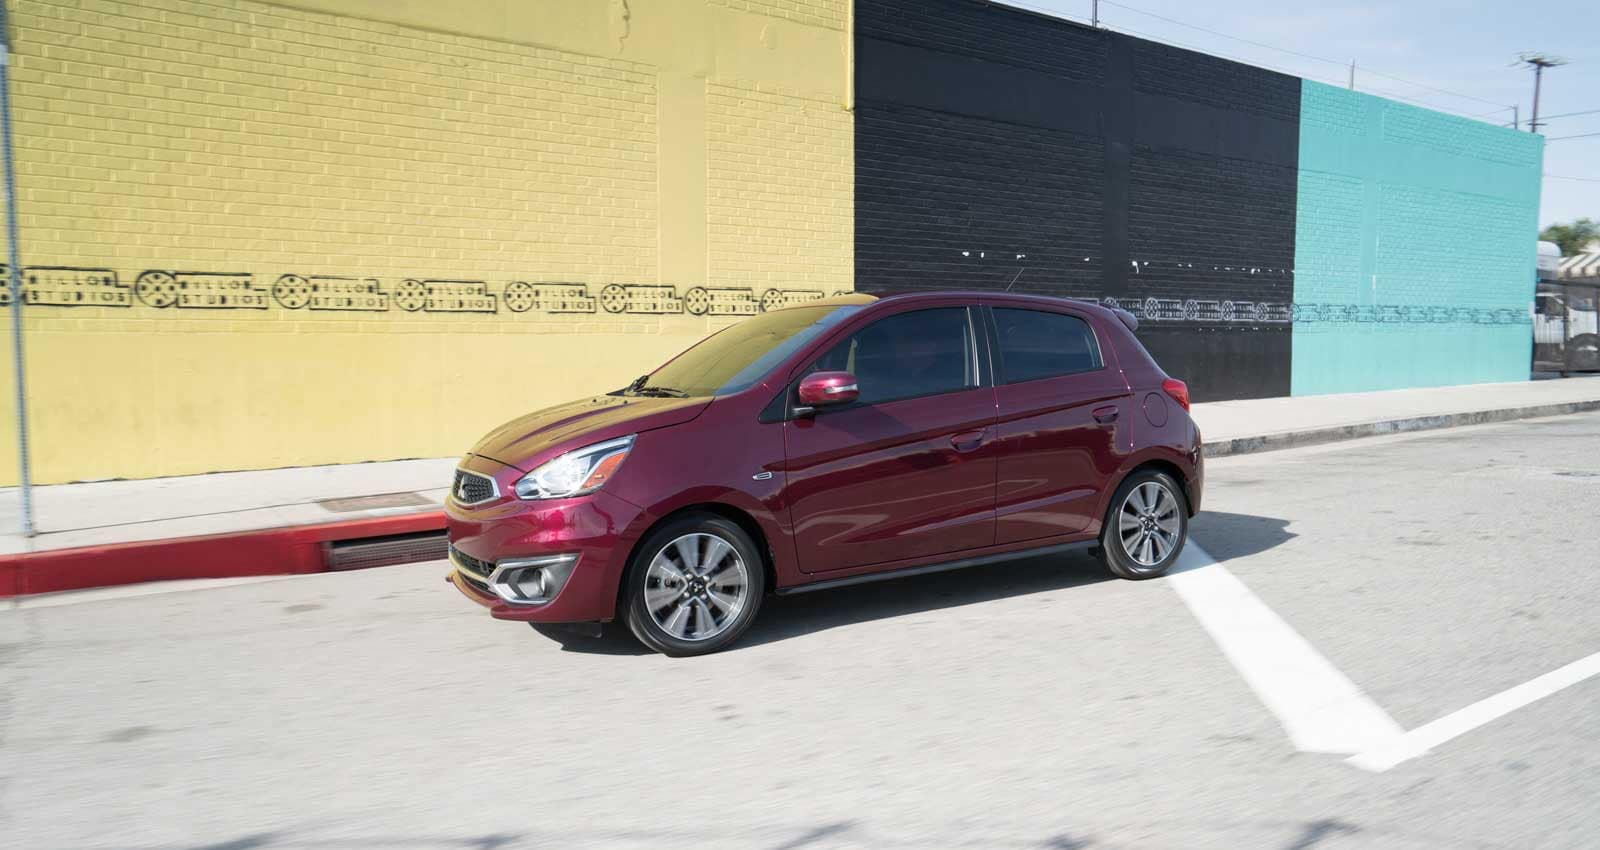 2019-mitsubishi-mirage parked in front of building with multi colored walls